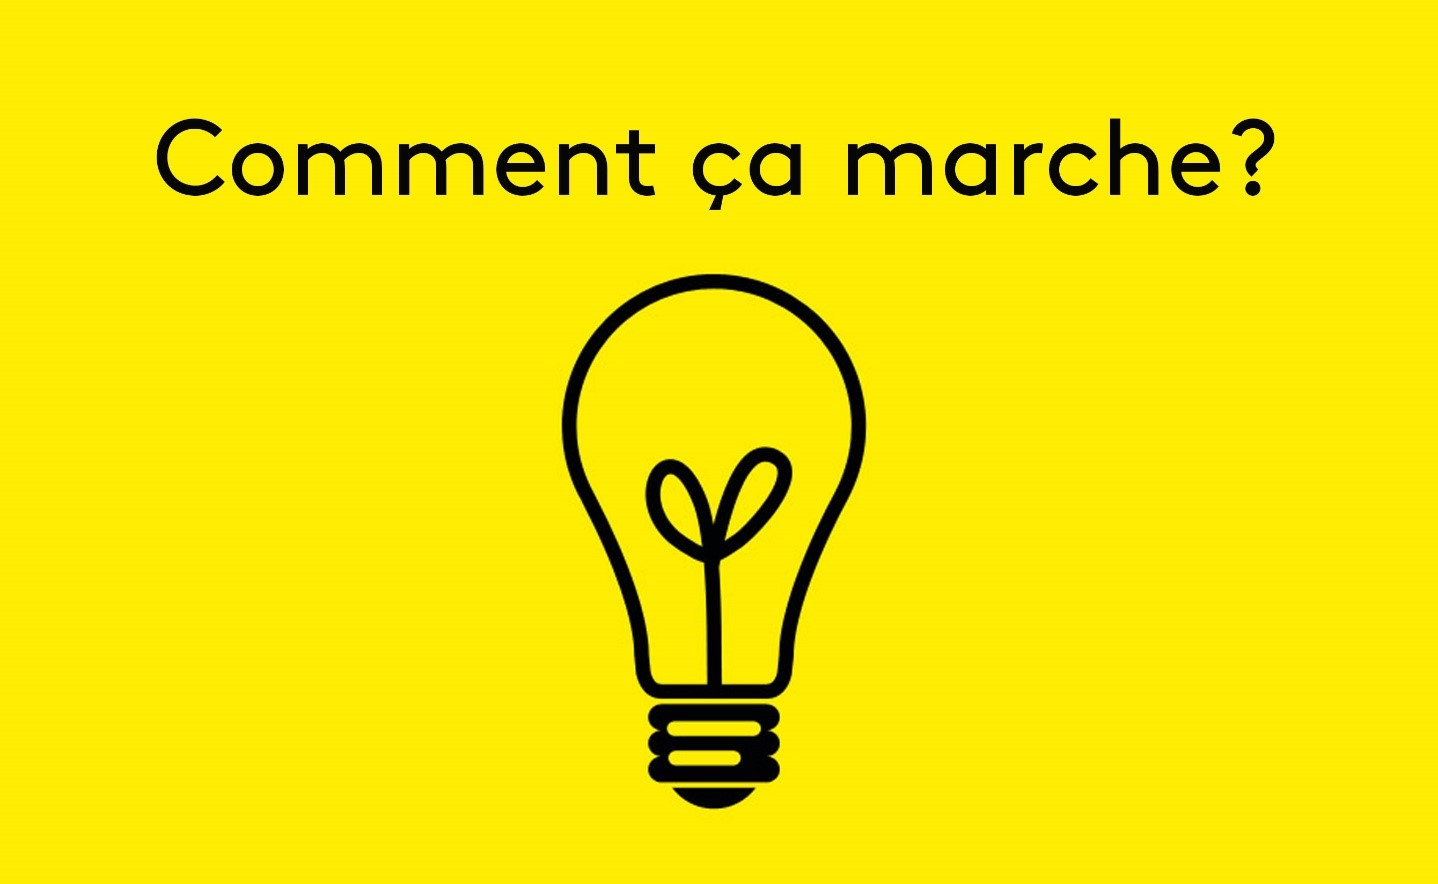 comment_ca_marche.jpg